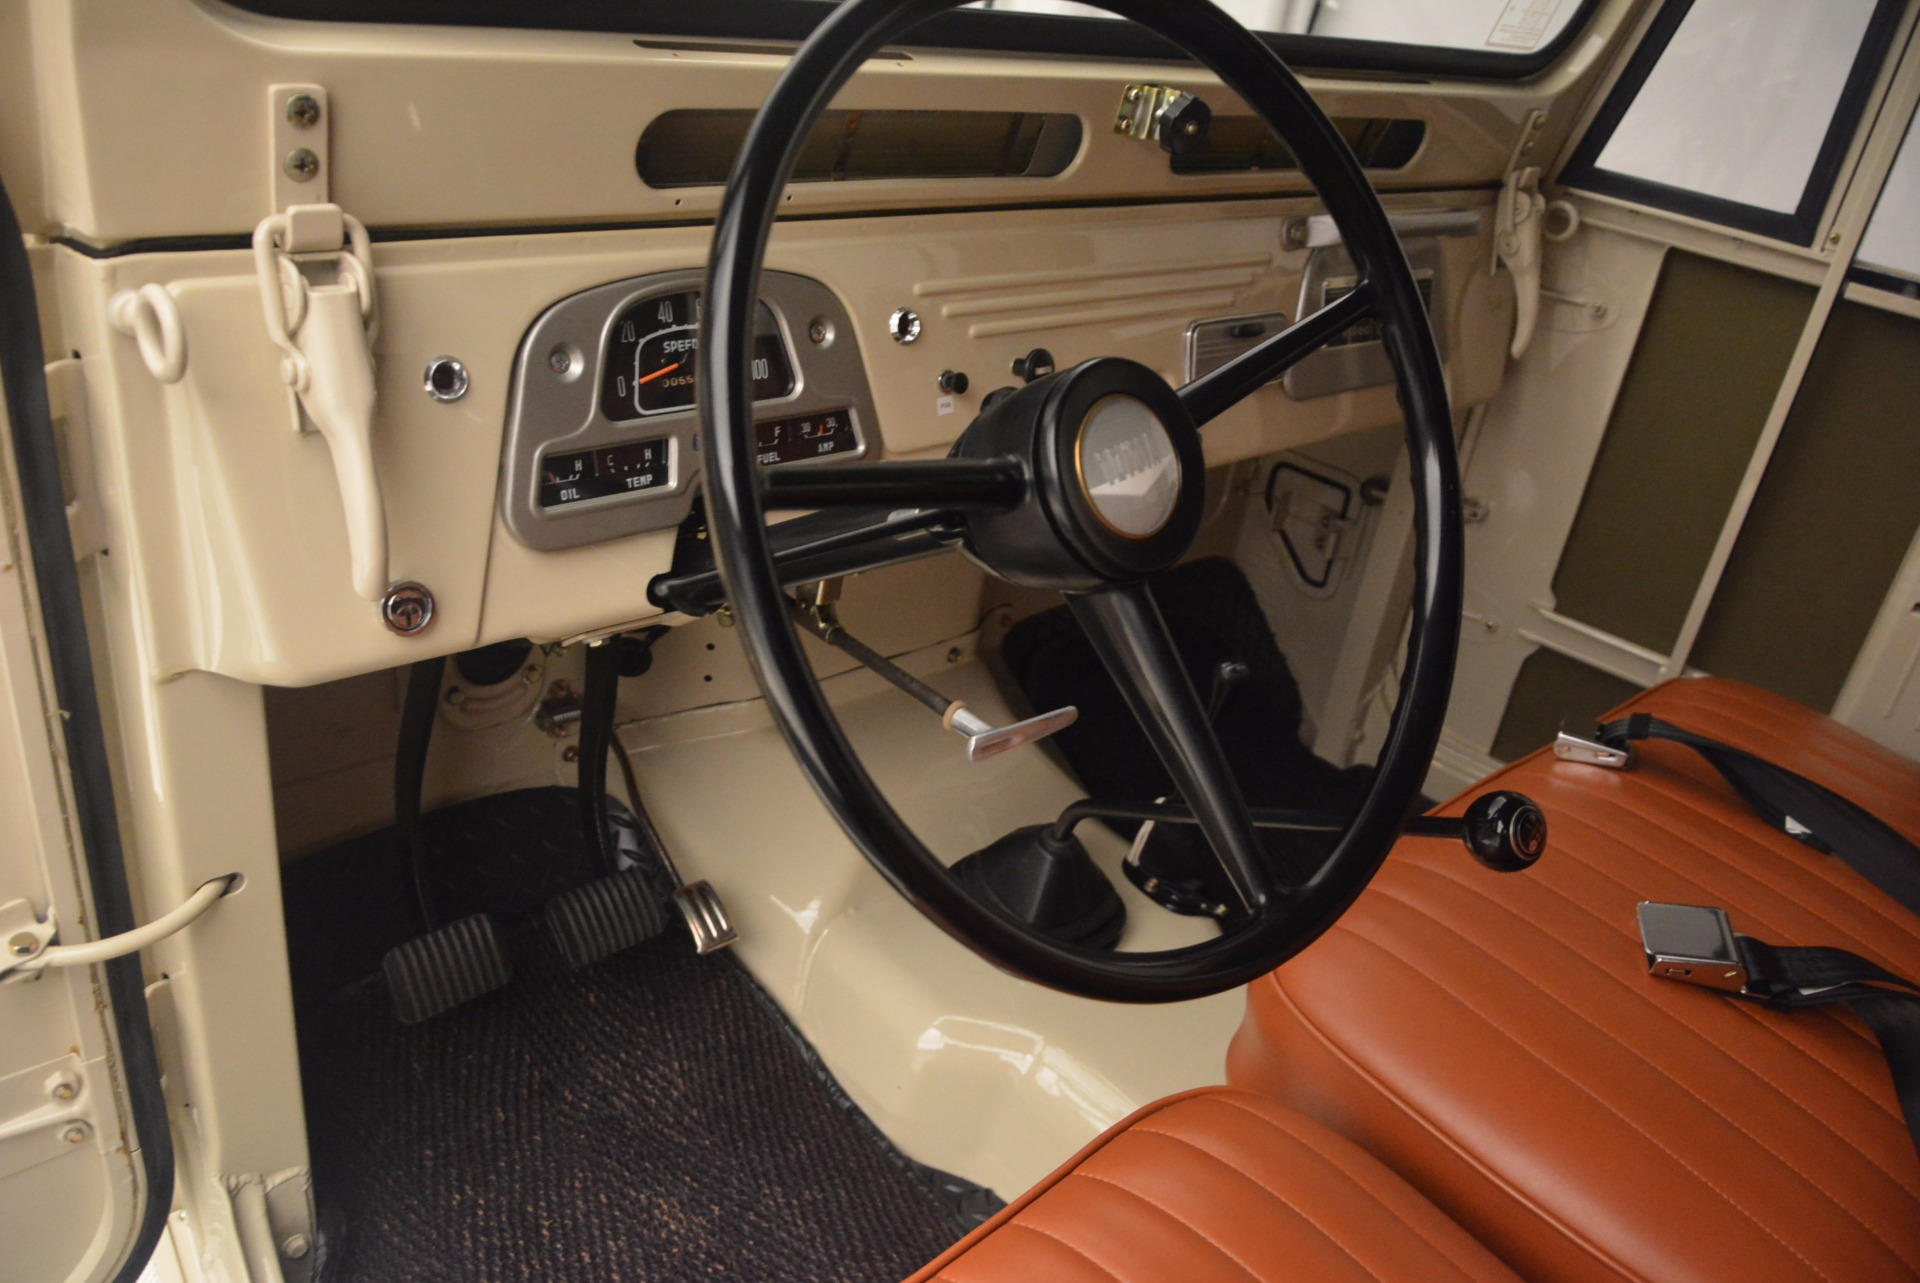 Used 1966 Toyota FJ40 Land Cruiser Land Cruiser | Greenwich, CT